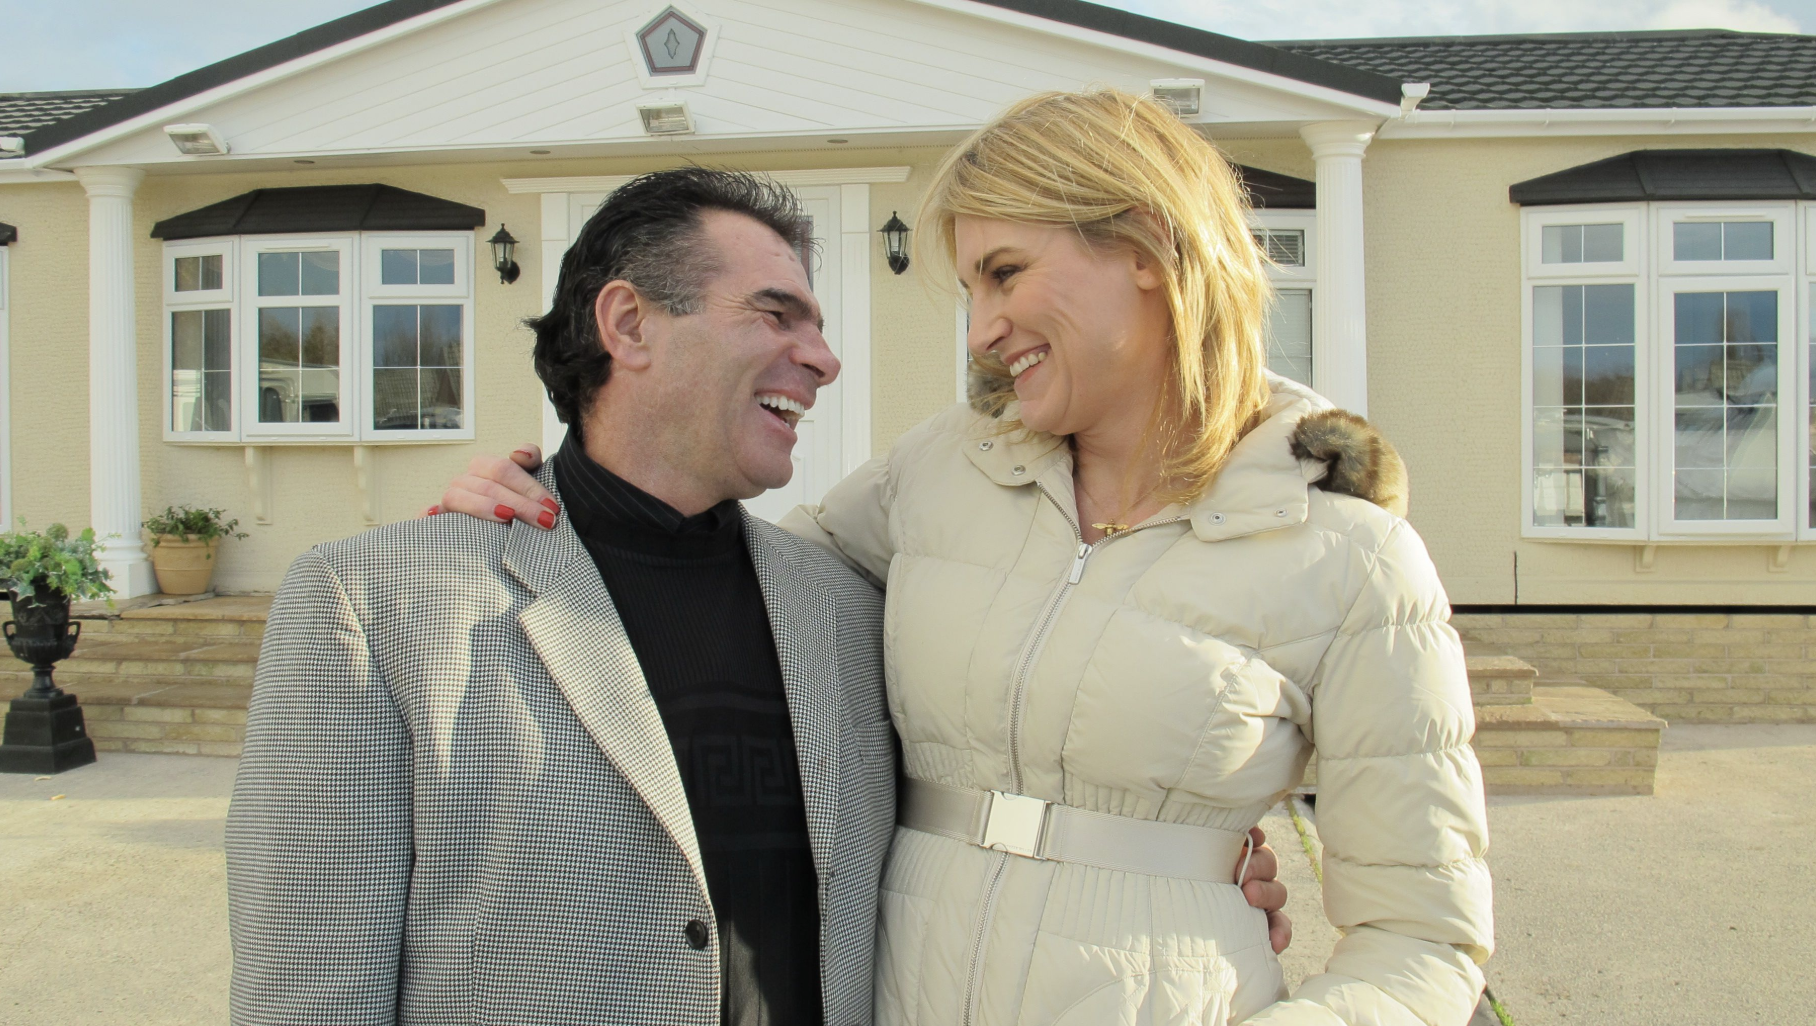 Paddy Doherty and Sally Bercow